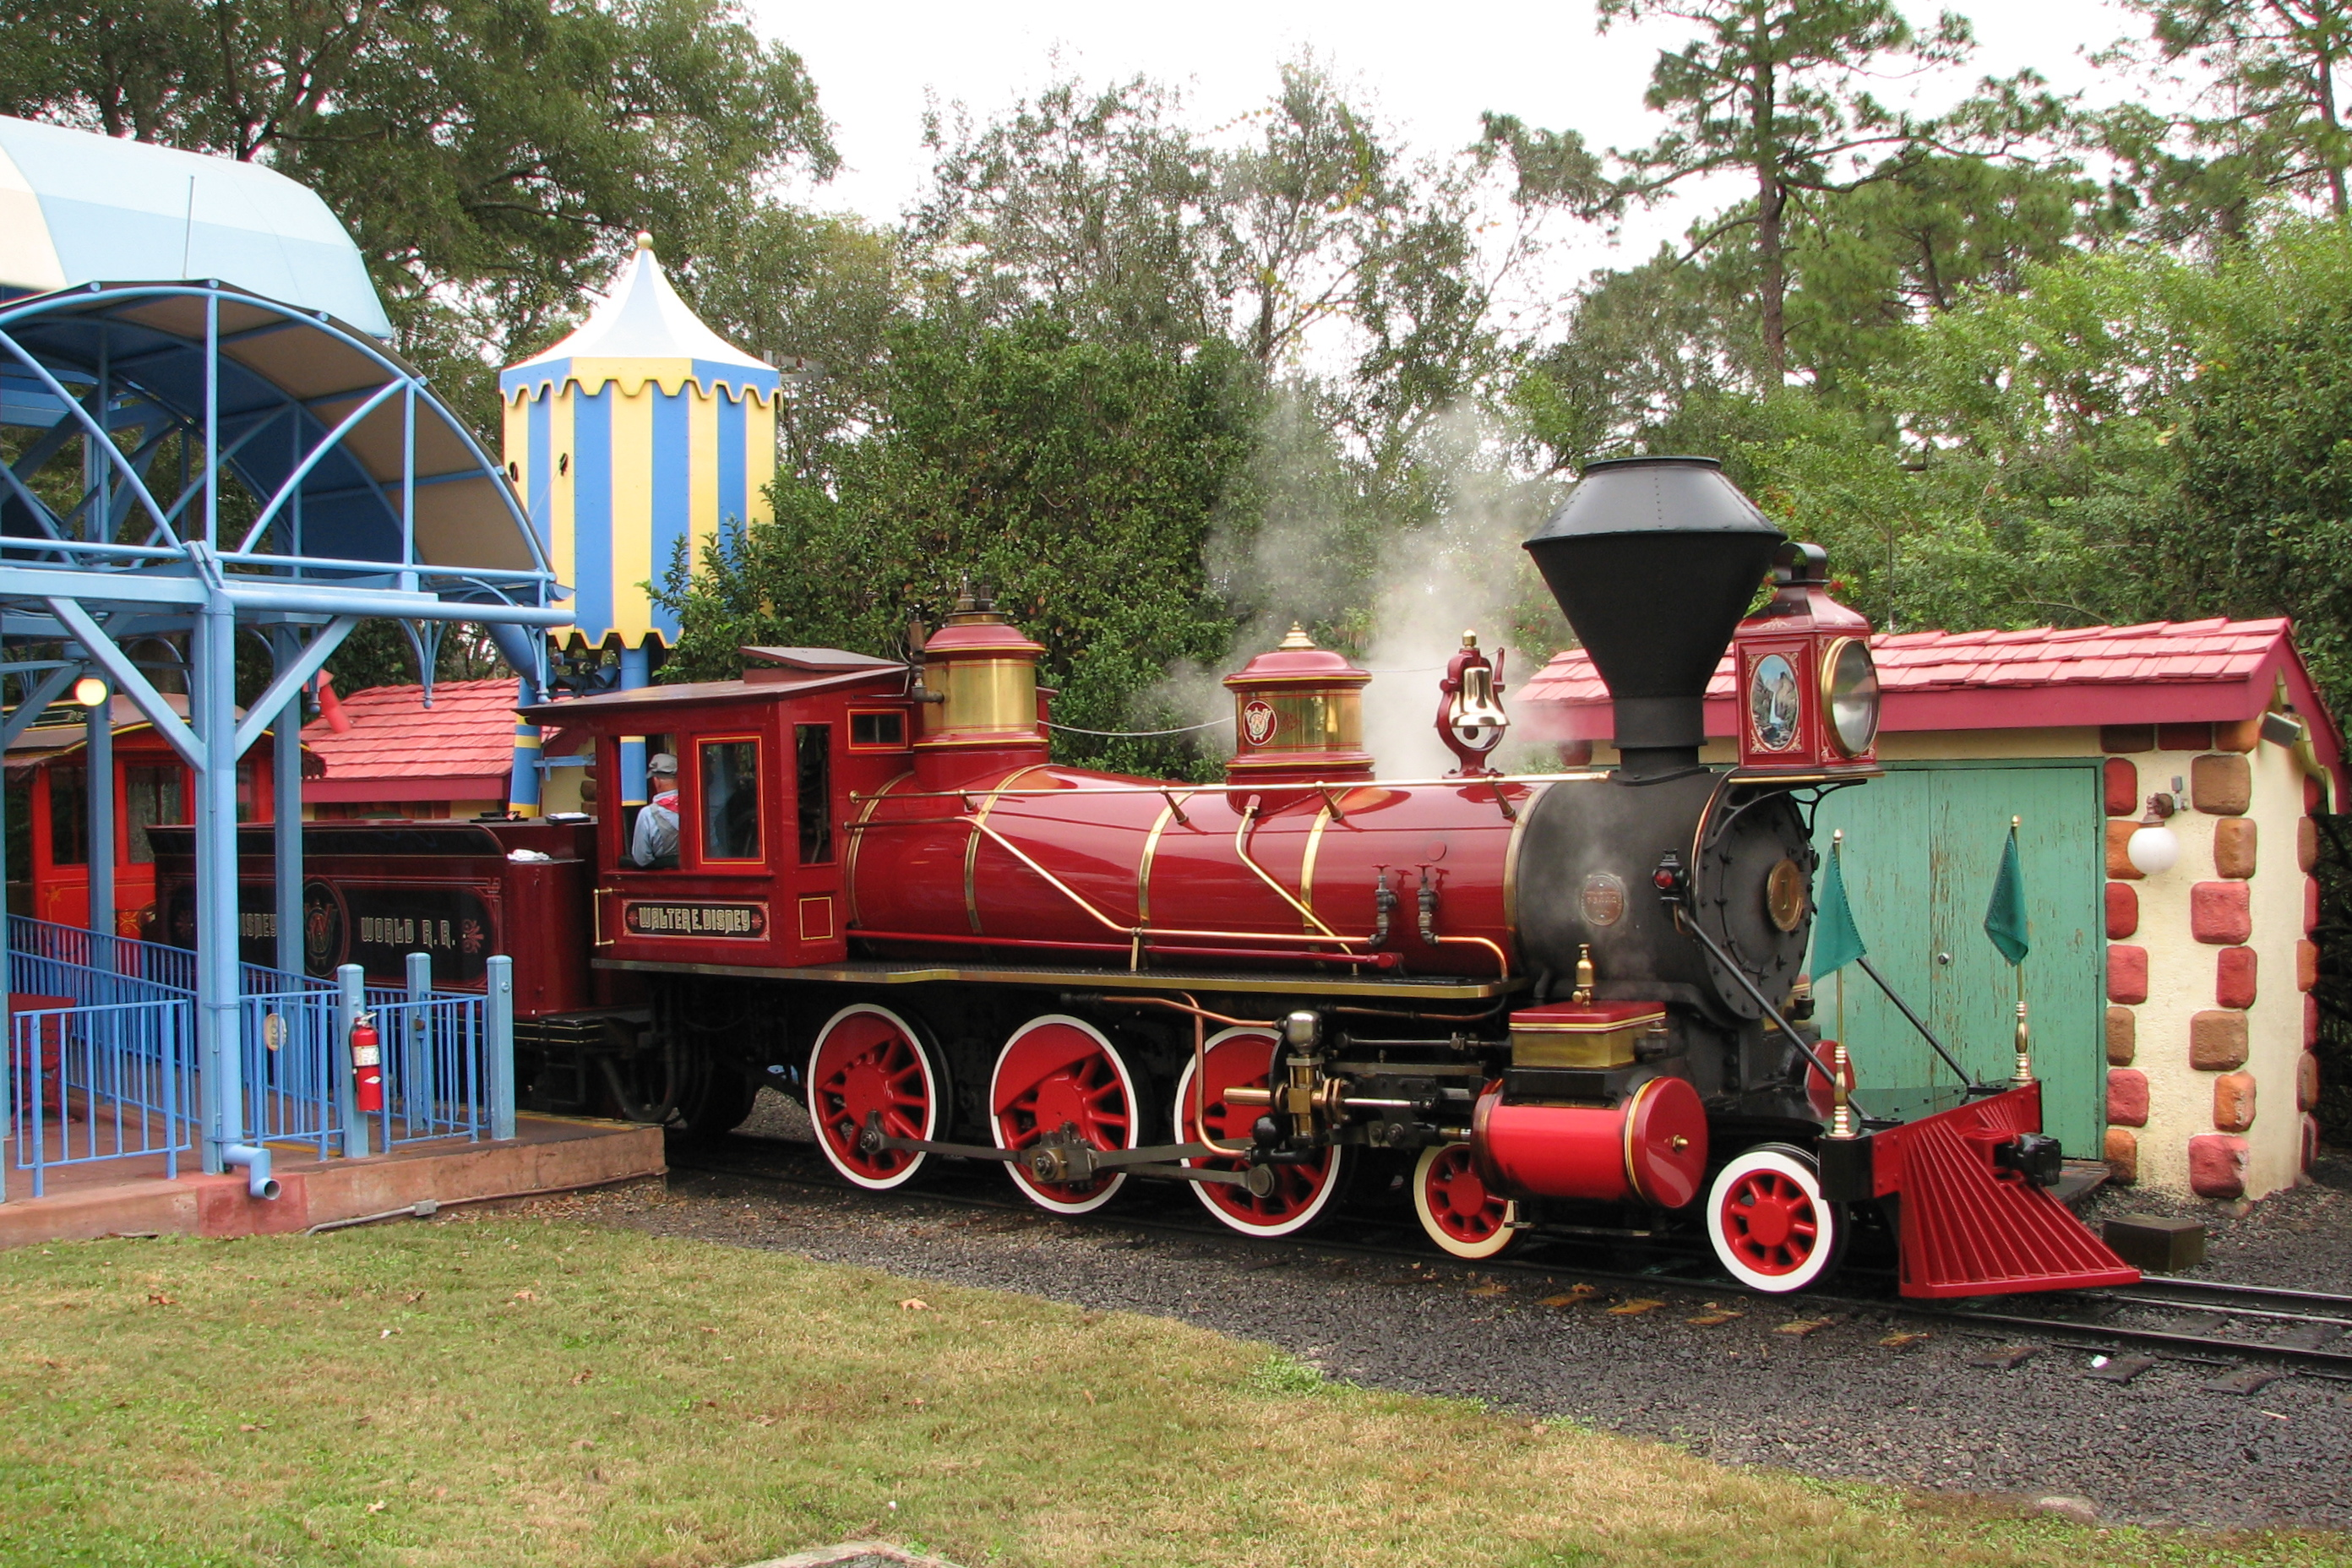 Delightful File:Walt Disney World Railroad Train